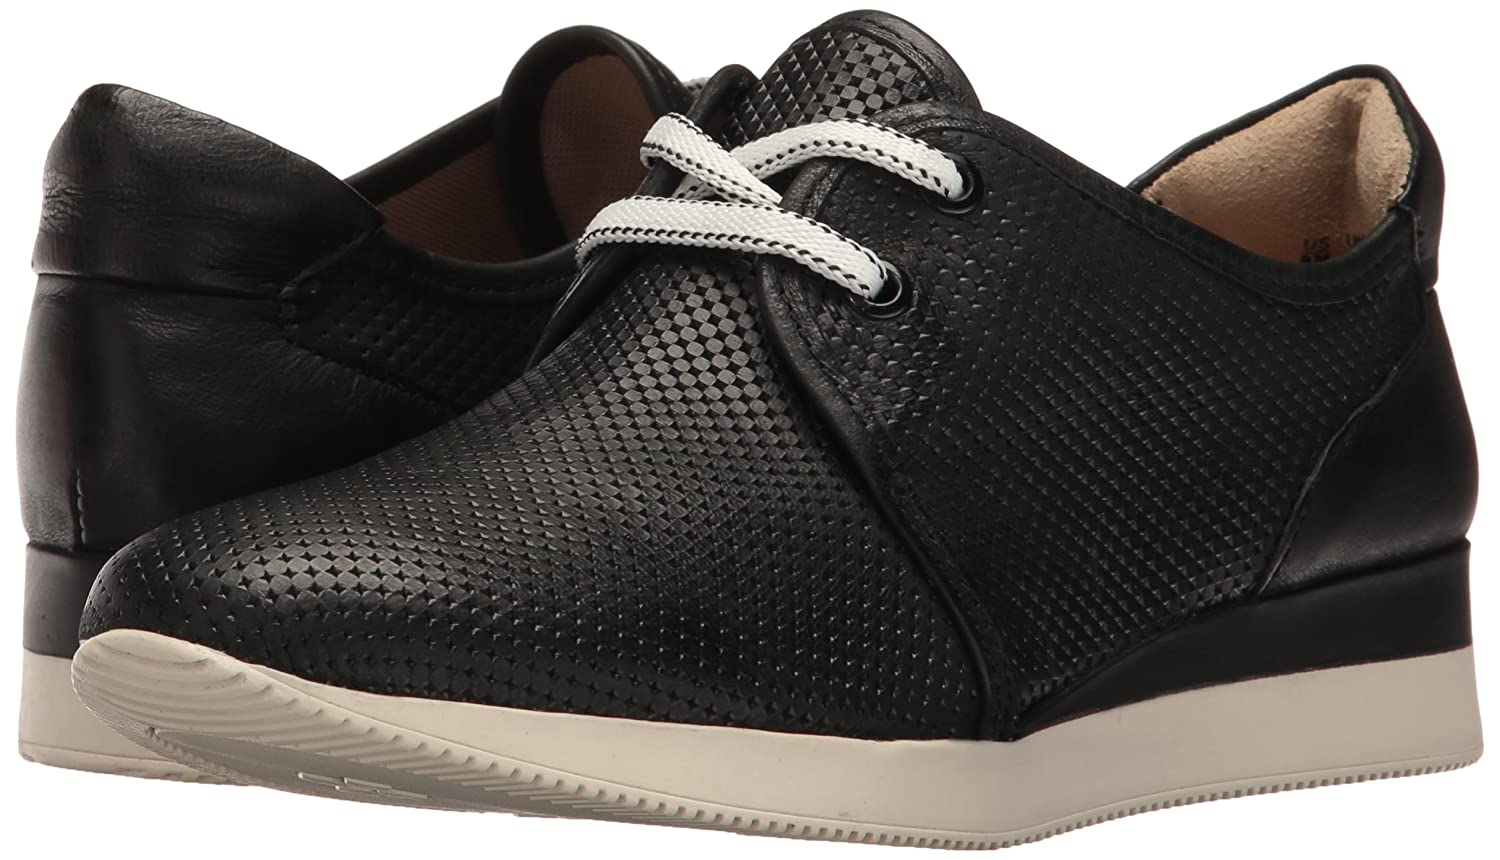 Naturalizer B01N08880S Women's Jaque Fashion Sneaker B01N08880S Naturalizer 9 N US|Black 444a6c